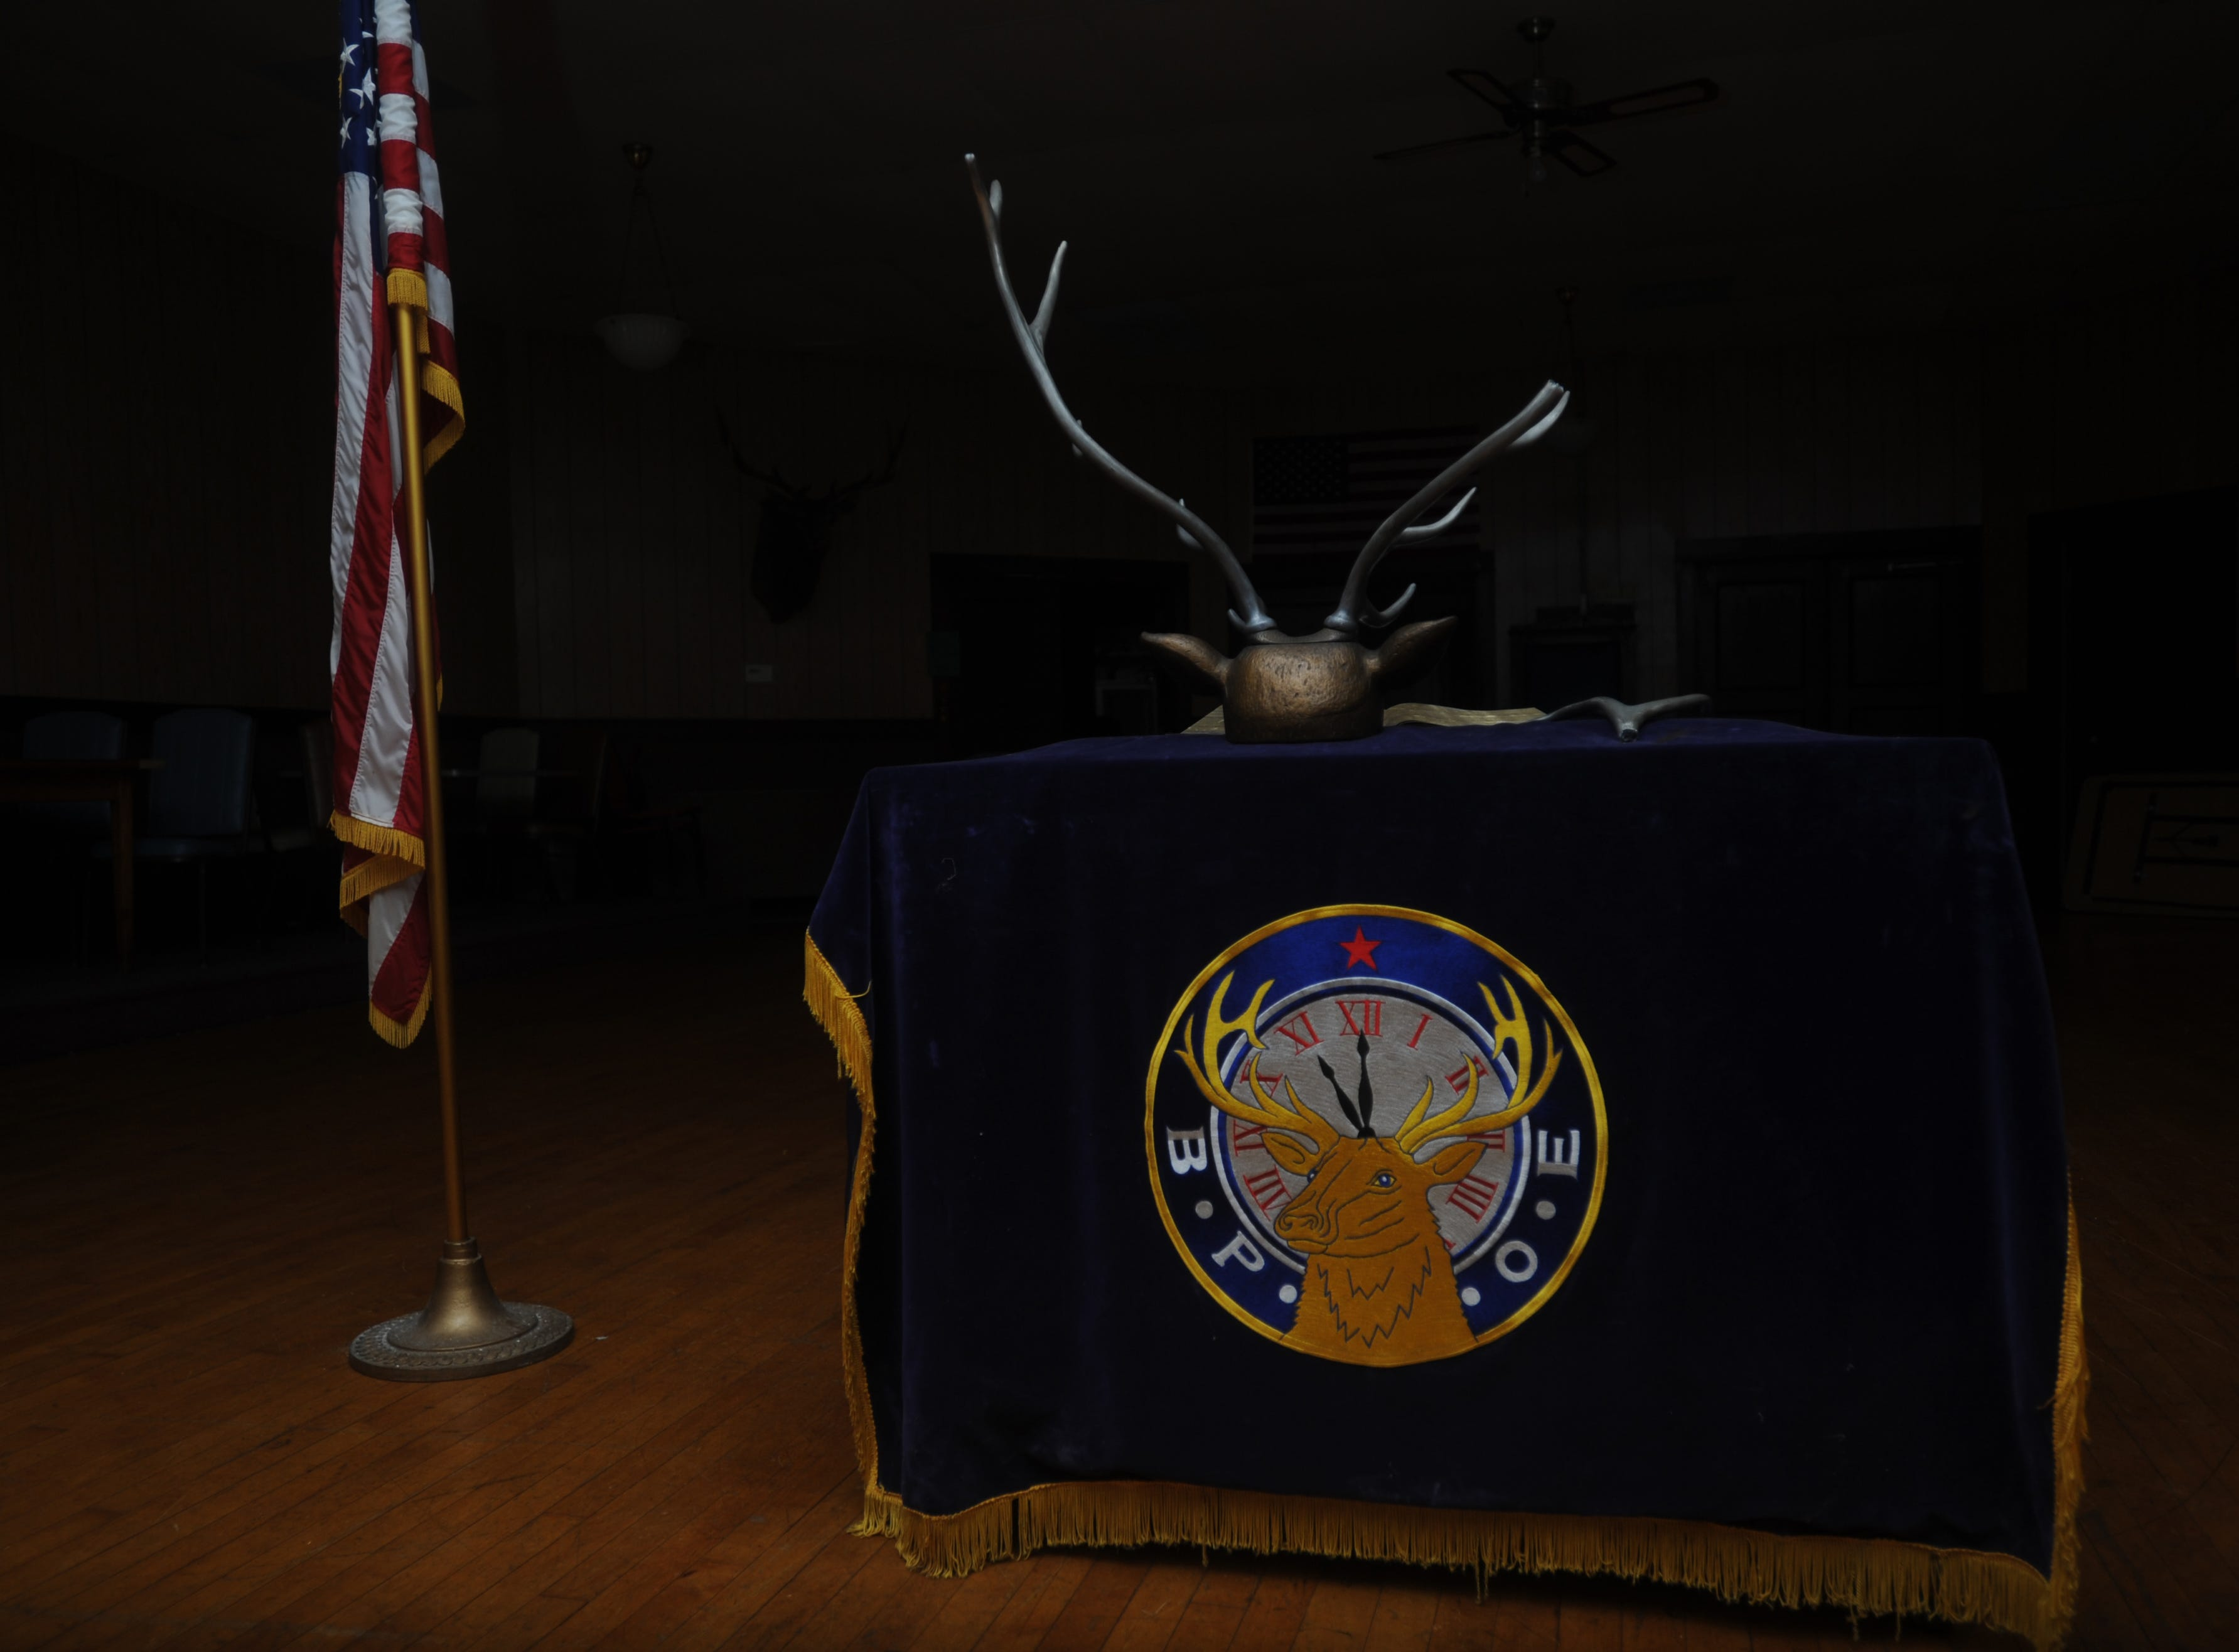 A look at the interior of the Zanesville Elks before the building was auctioned in 2011.